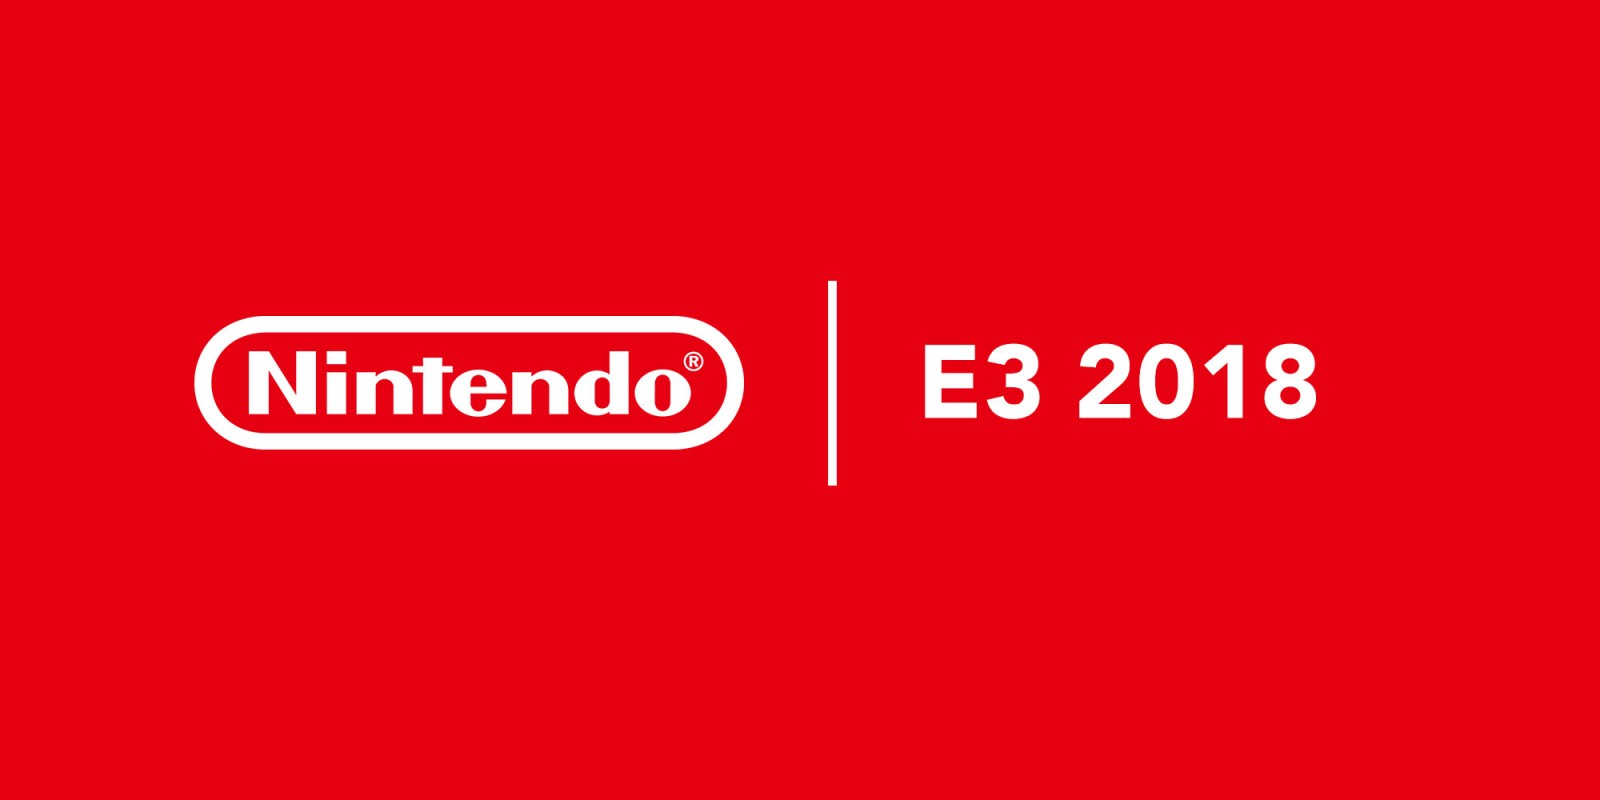 Sigue en vivo los anuncios del Nintendo Direct de E3 2018